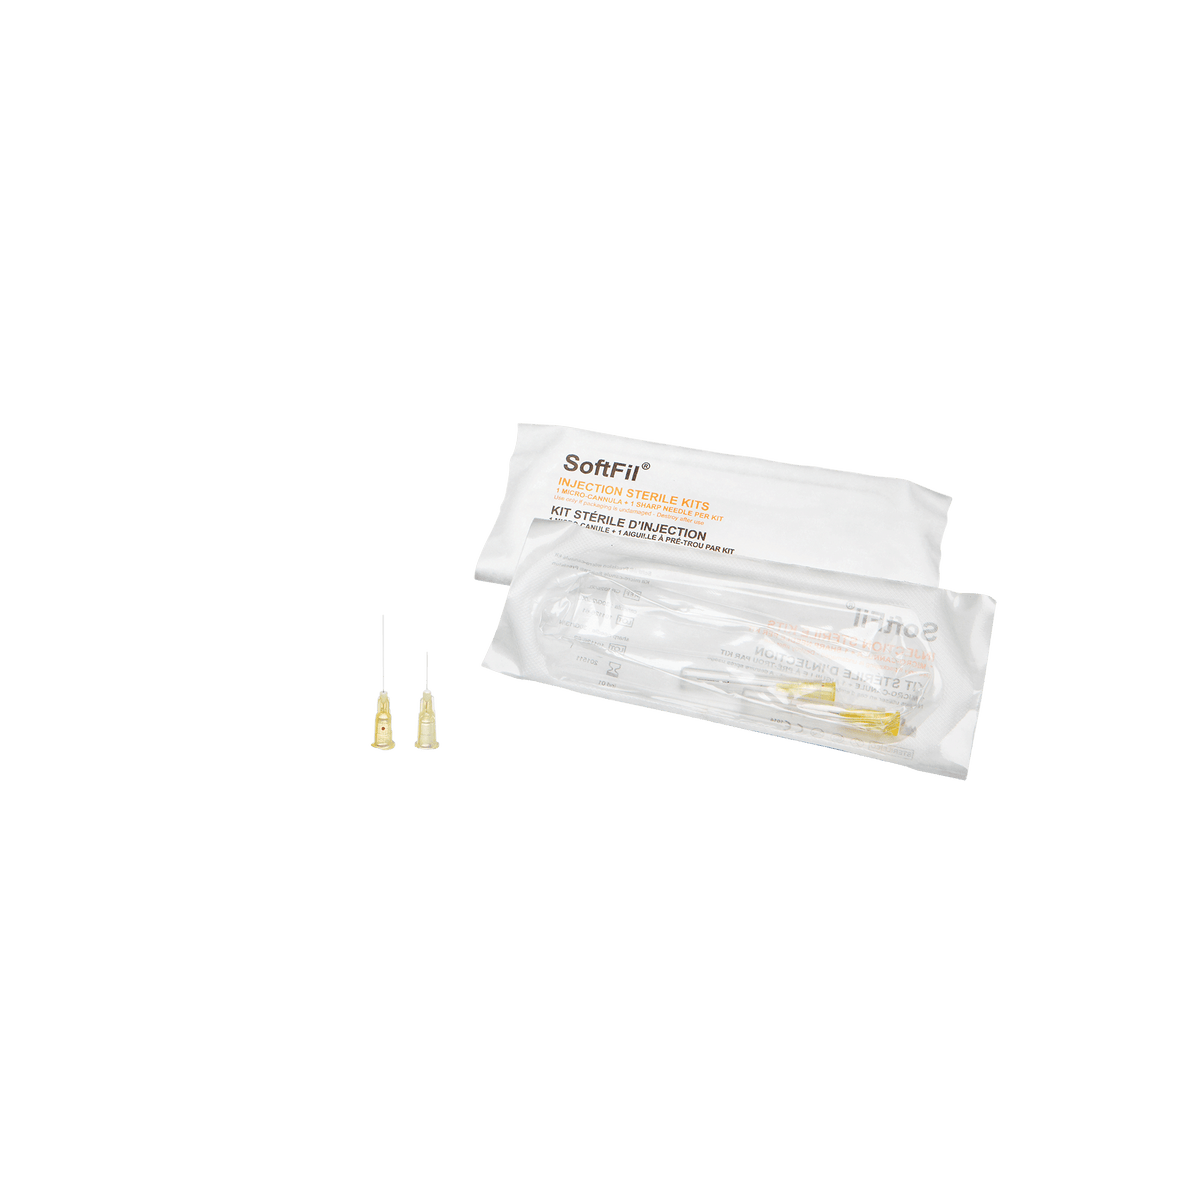 SoftFil - Softfil PRECISION Mikrokanüle 30G 25mm Single Kit - DANYCARE